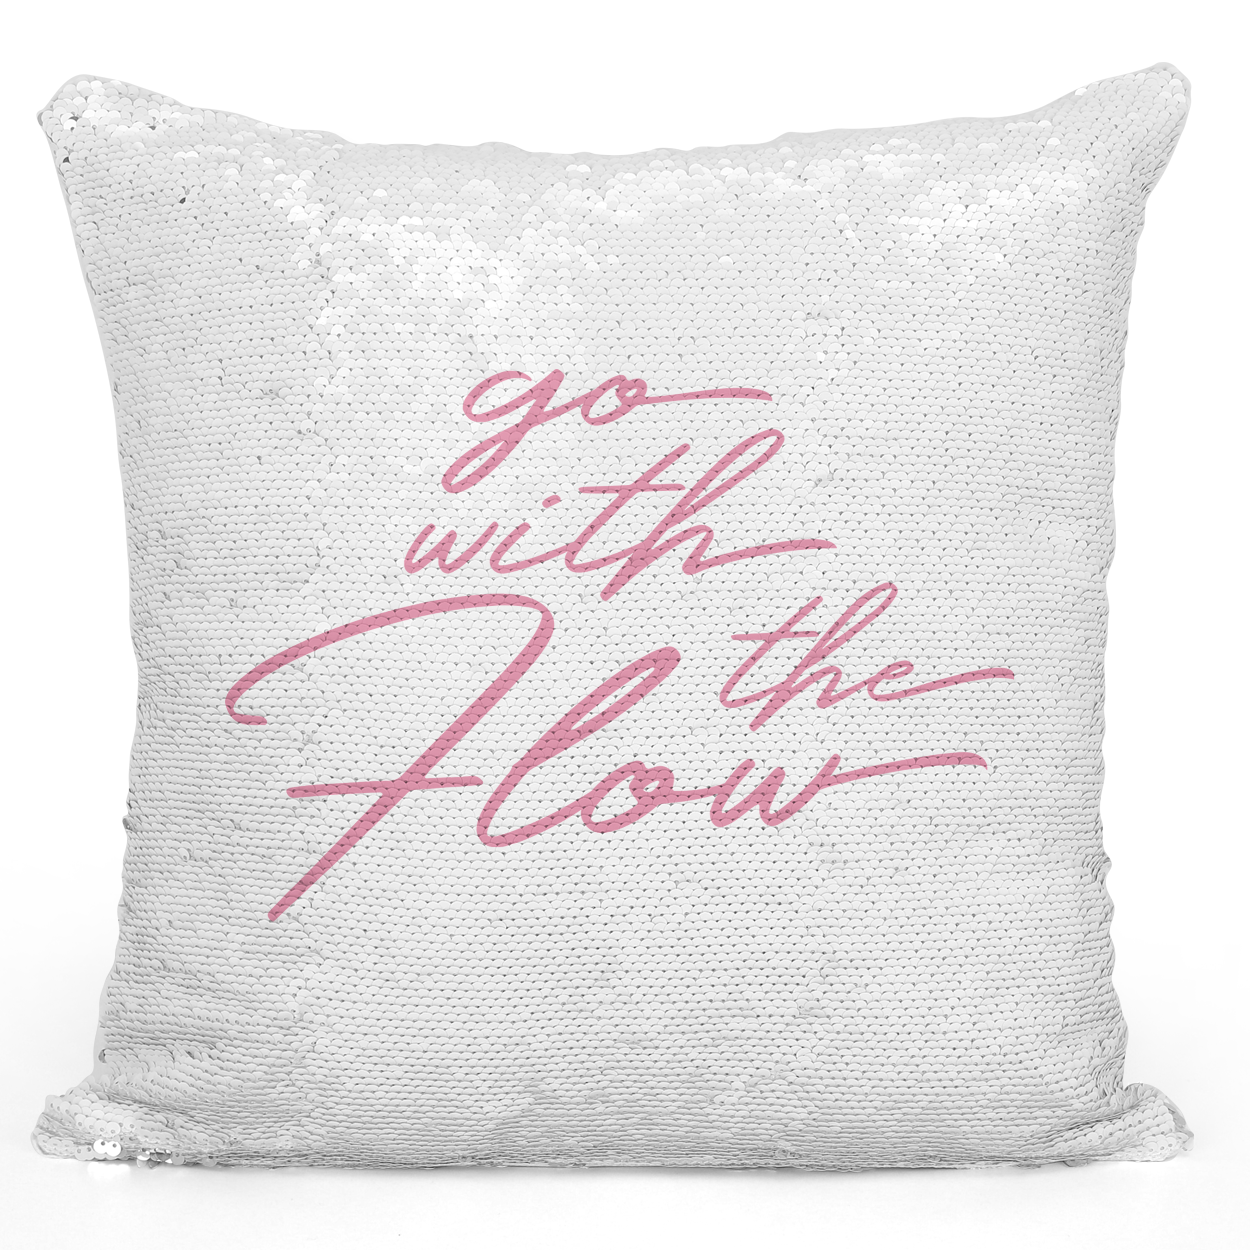 16x16 inch Sequin Throw Pillow Magic Flip Pillow Go With The Flow Pink Pillow With Words Loud Universe